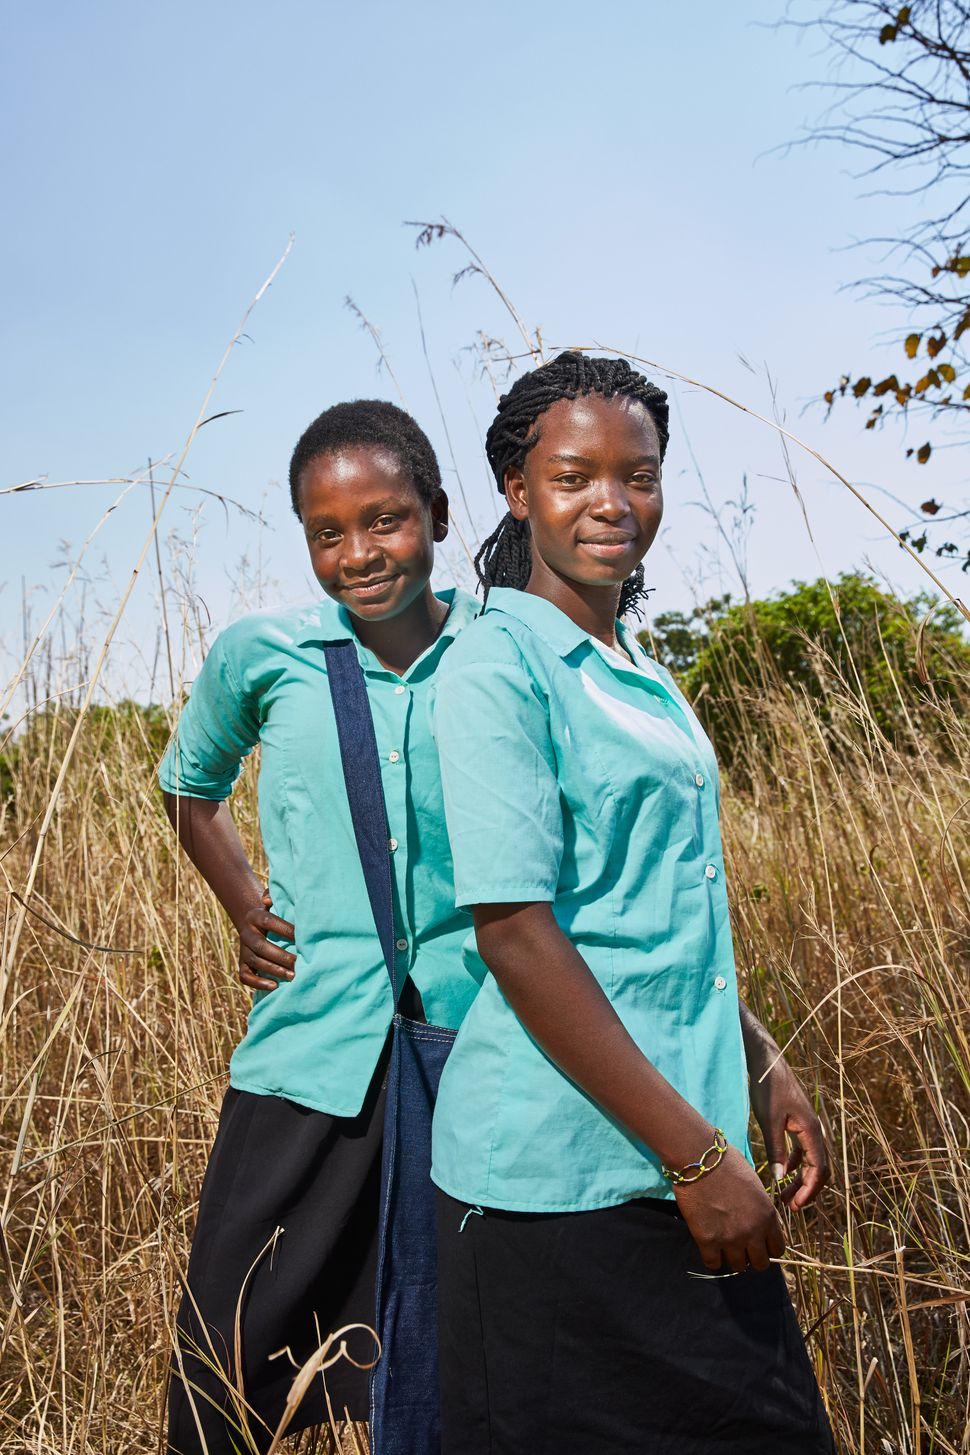 At Green Malata, schoolgirls like Tamanda (right,16) and Blessings (left, 15), who cannot afford to buy The School Girl Pack